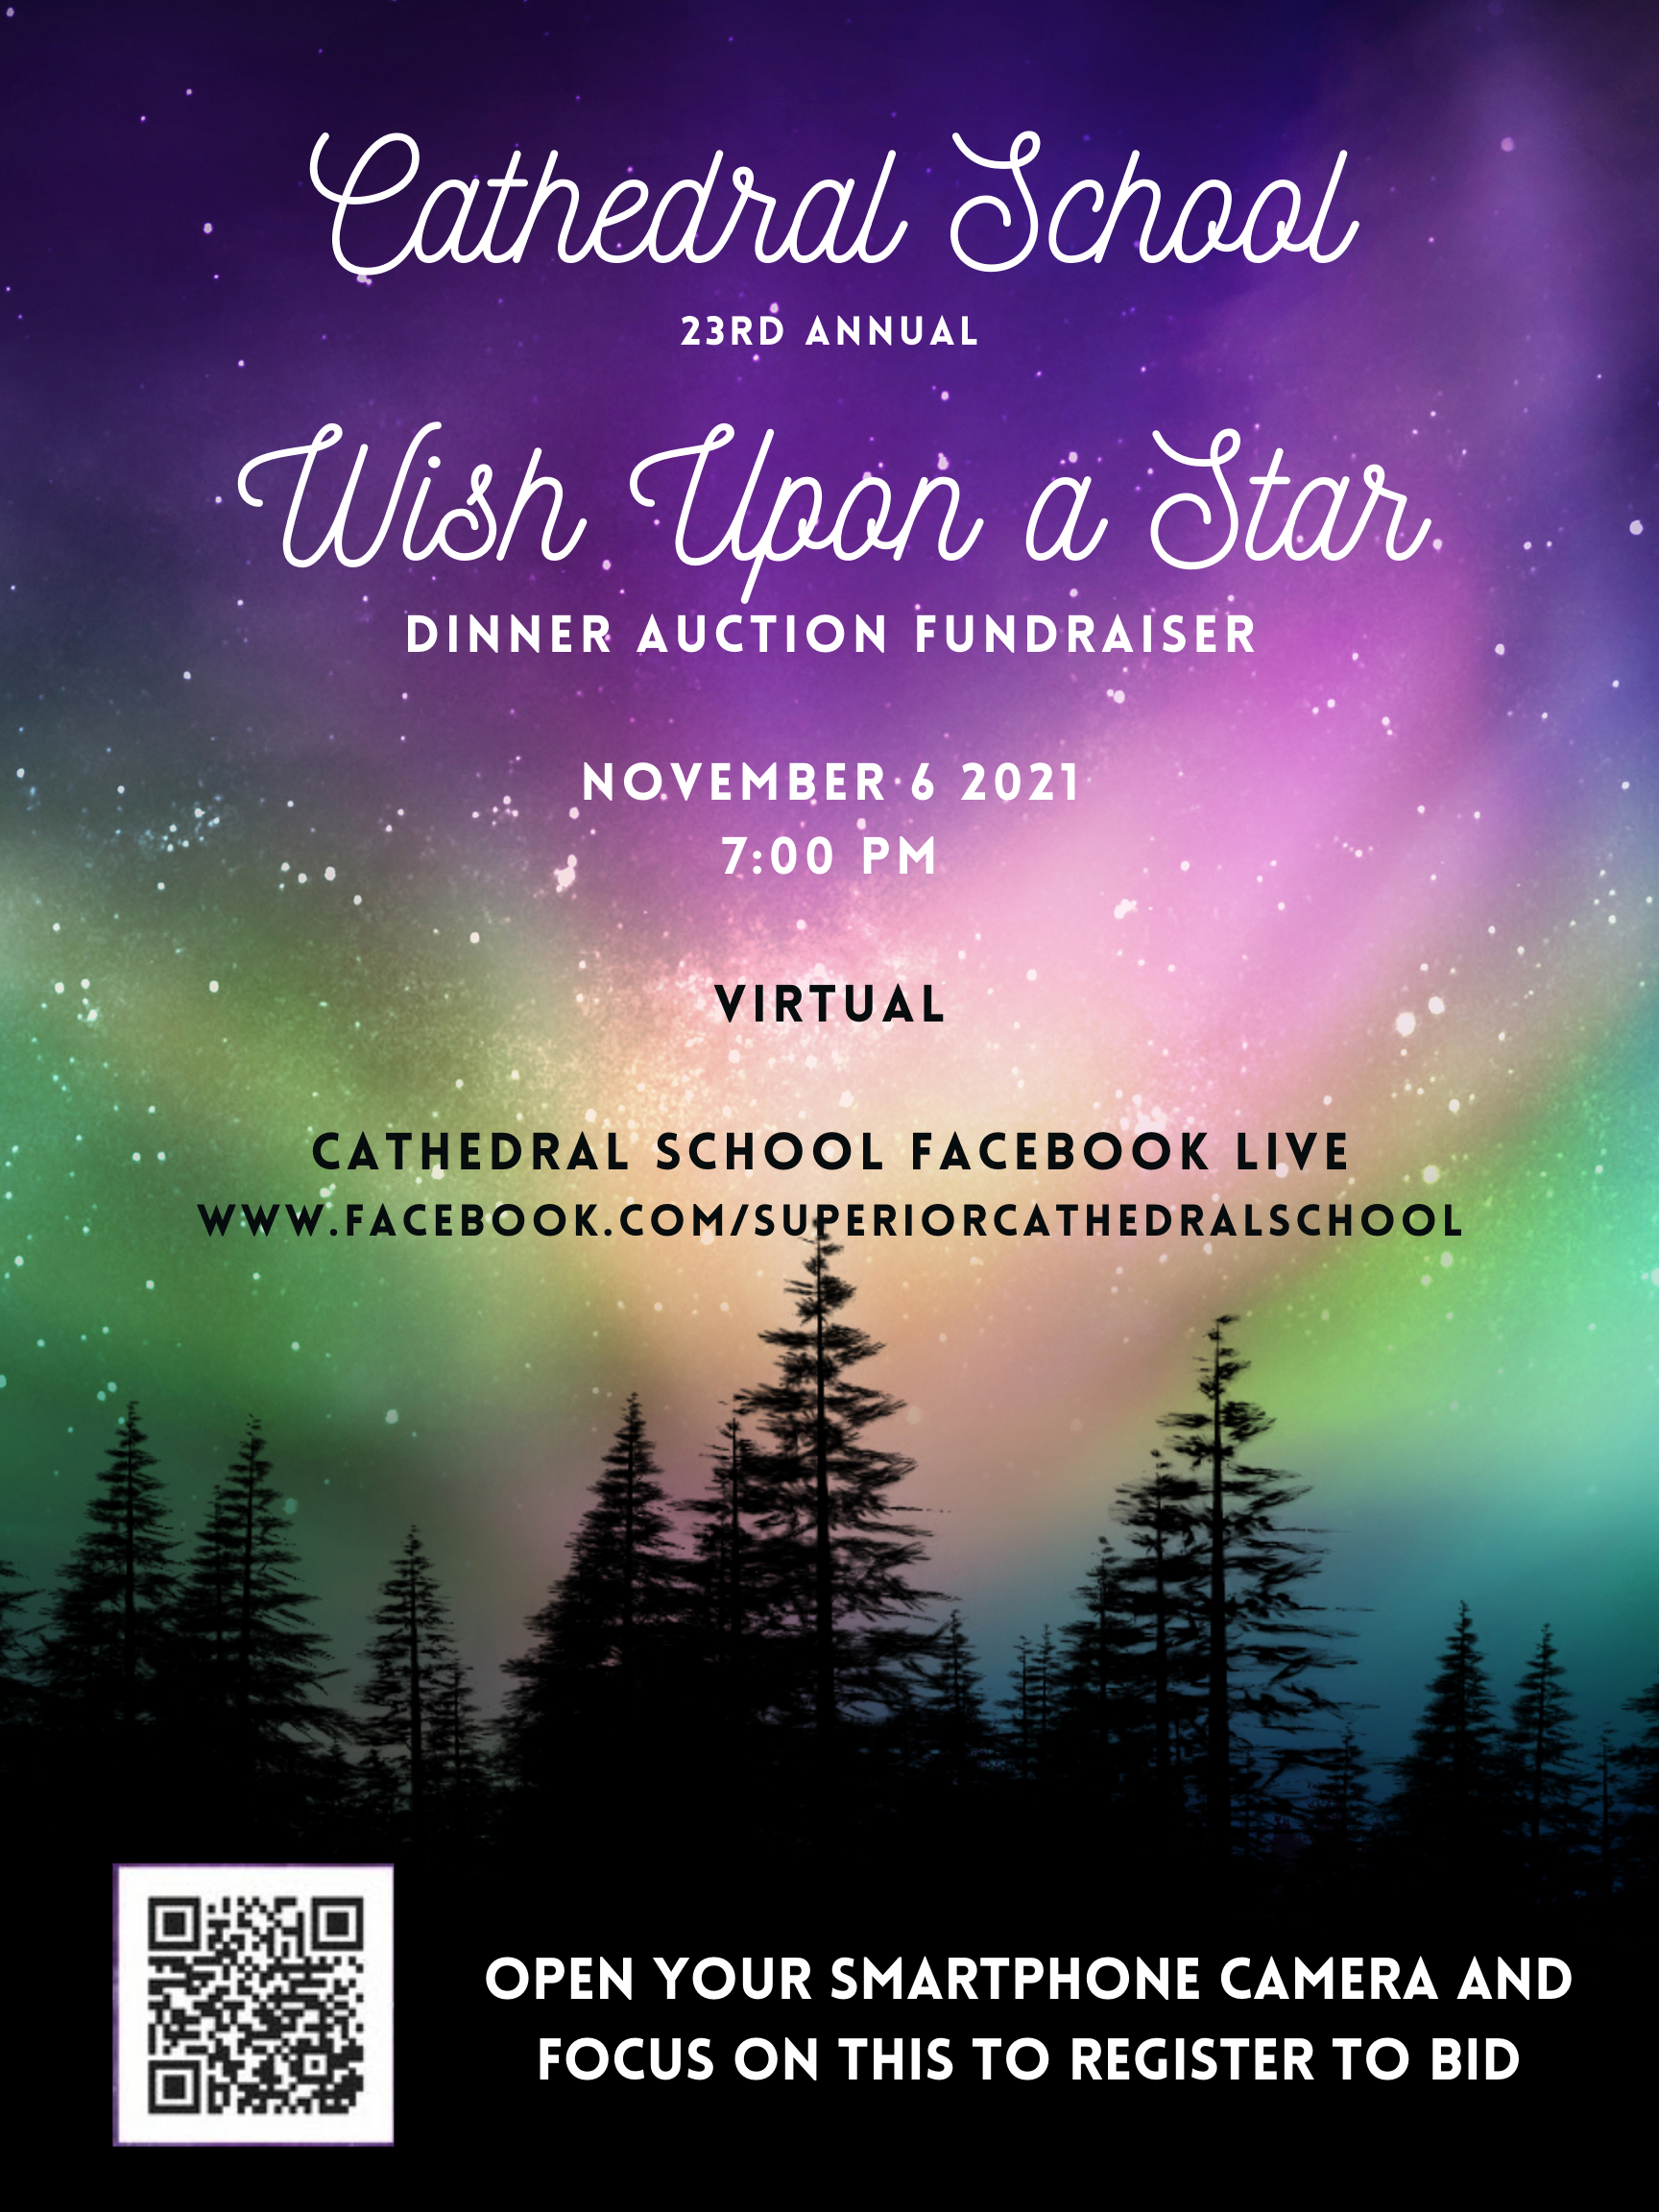 Cathedral School Wish Upon a Star Auction